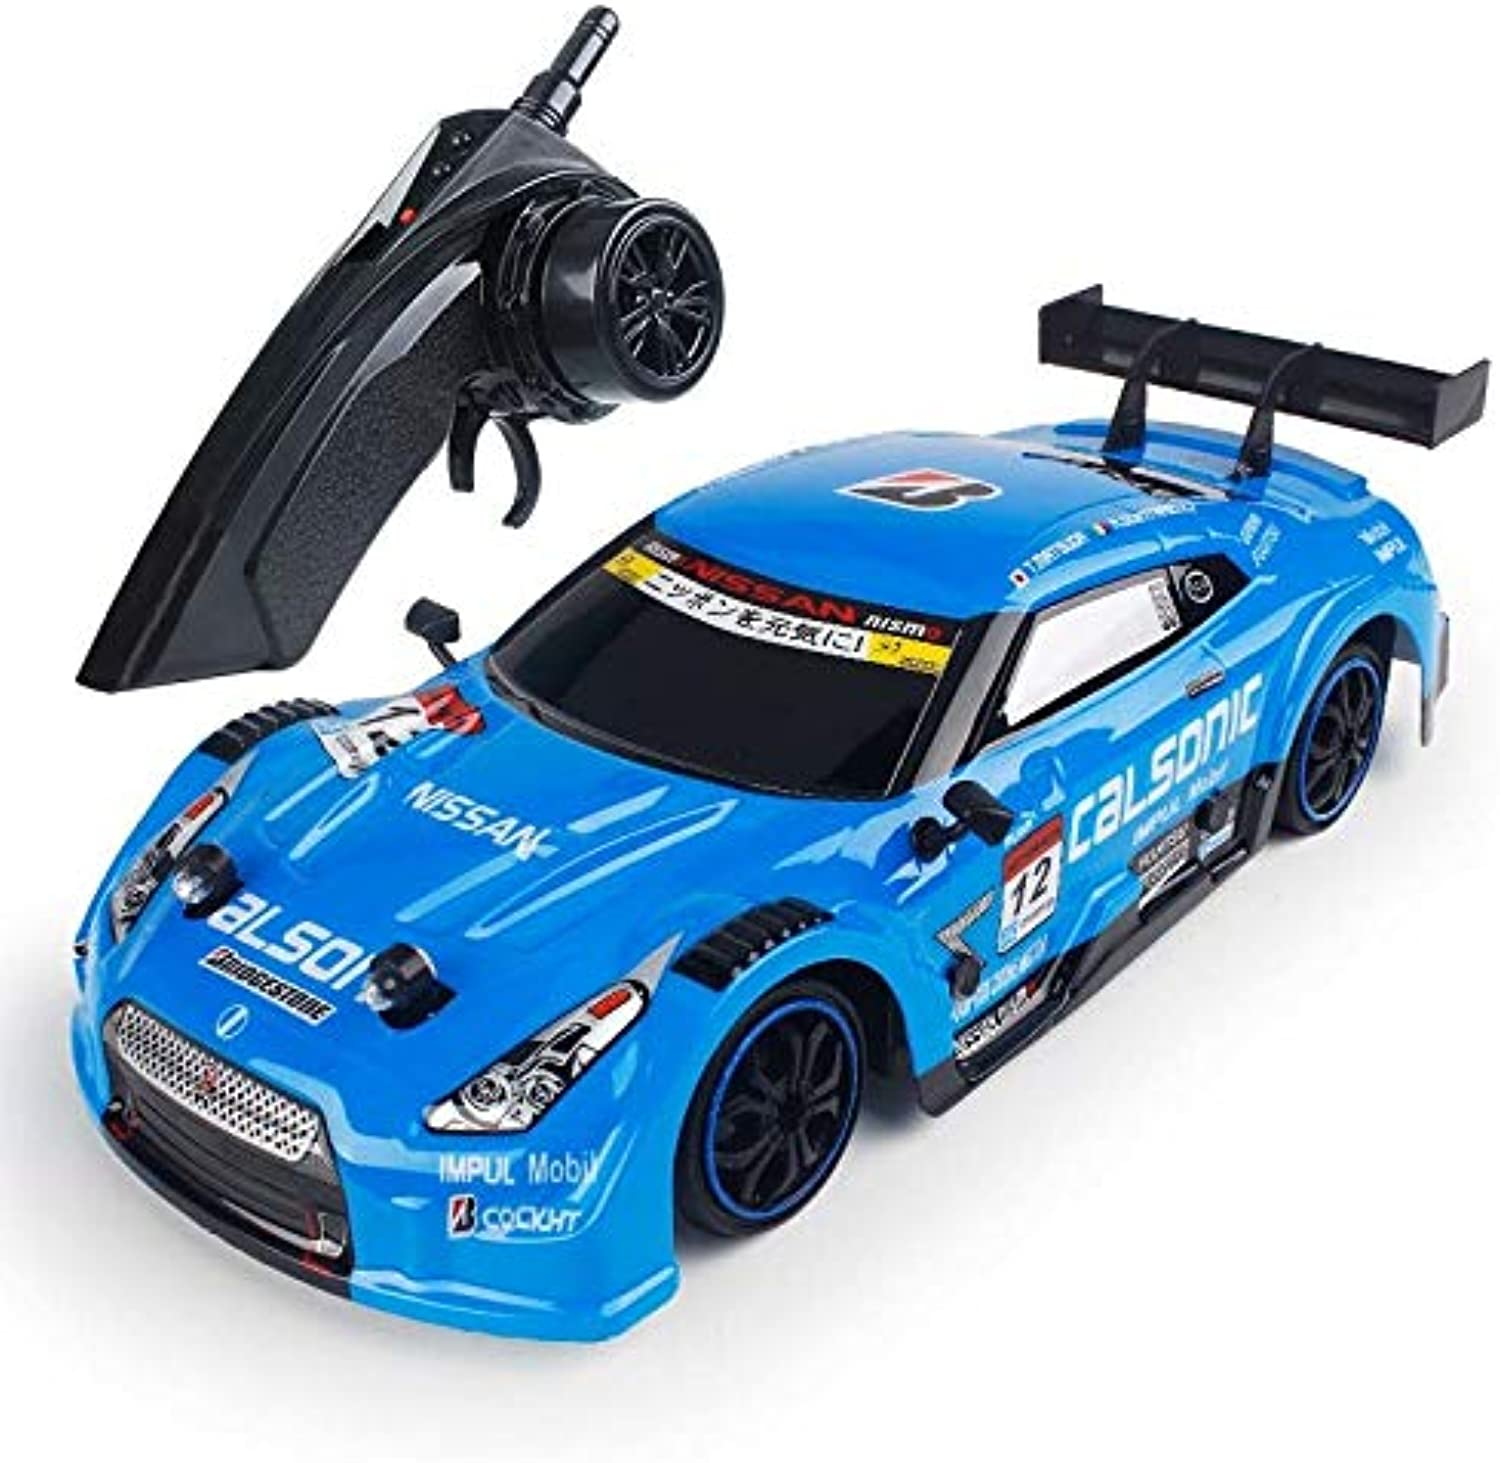 Generic RC Car for GTR   Lexus 4WD Drift Racing Car Championship 2.4g Off Road Rockstar Radio Vehicle Remote Control Electronic Hobbies bluee